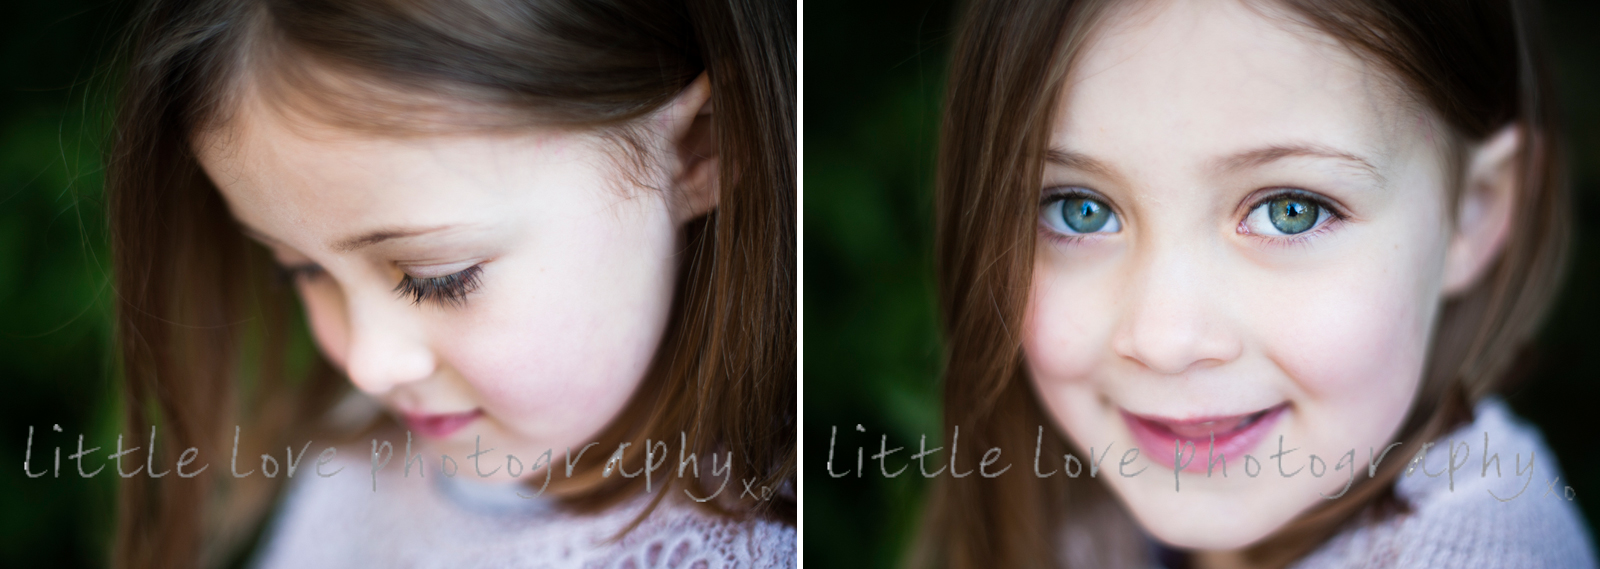 beautiful-photograph-of-little-girl-with-sparkly-eyes-in-natural-light-candid-and-unposed-by-little-love-photography